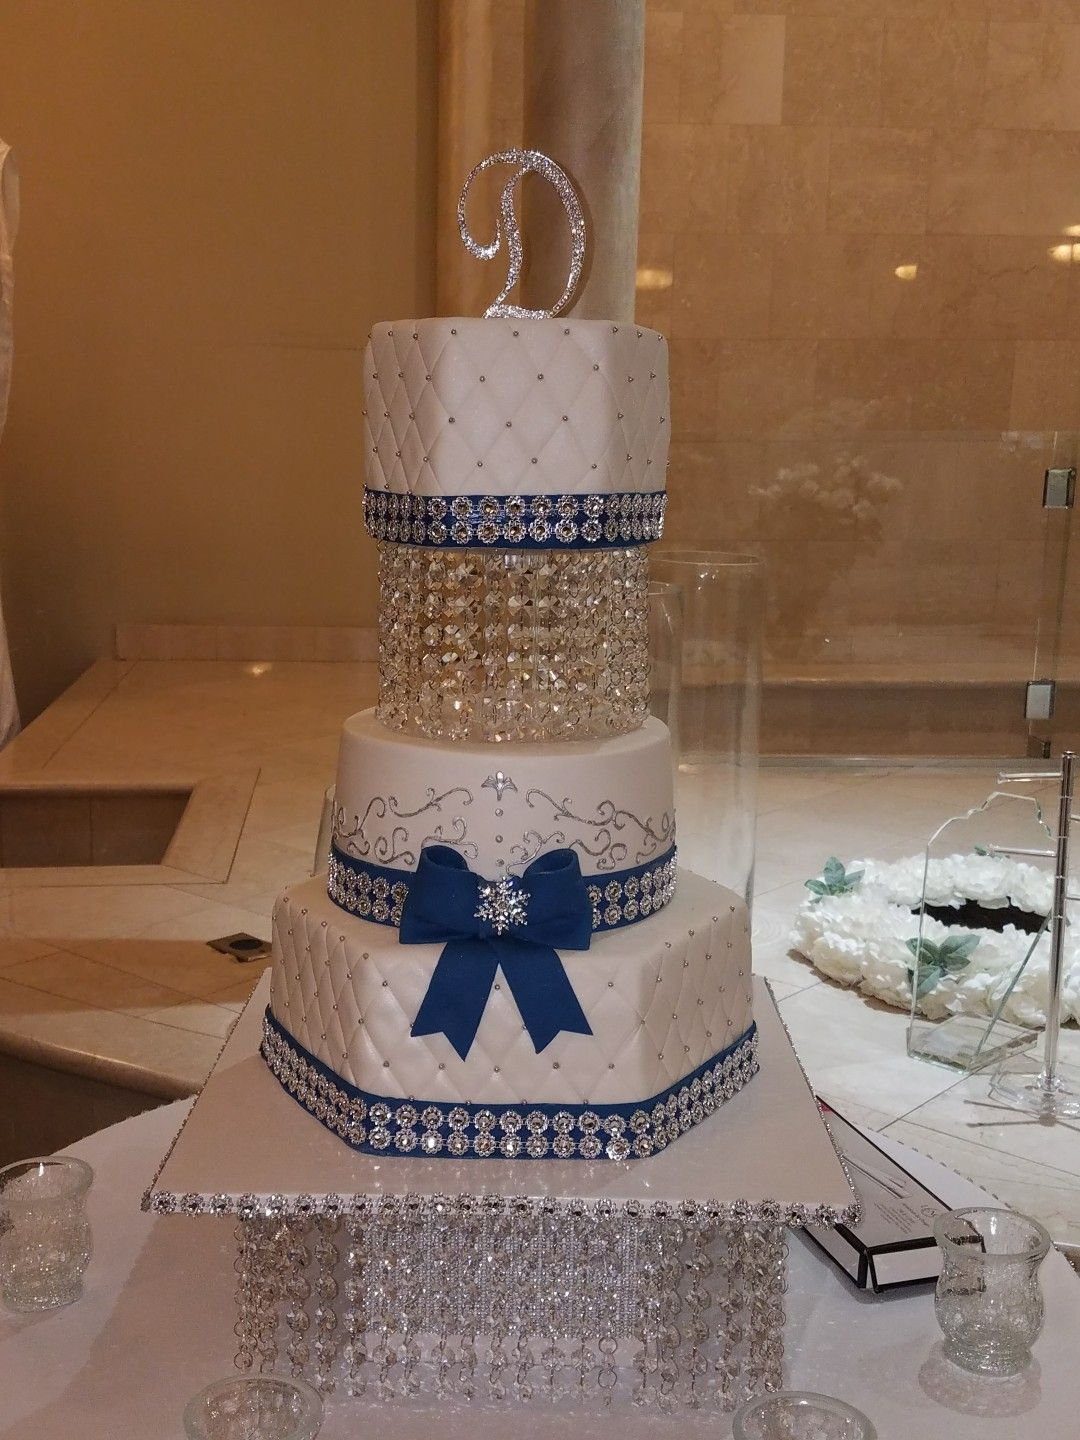 Three Tiered White And Royal Blue Wedding Cake With Bling And Crytsal Seperators And Crystal Stand Silver Wedding Cake Wedding Cakes Blue Bling Wedding Cakes